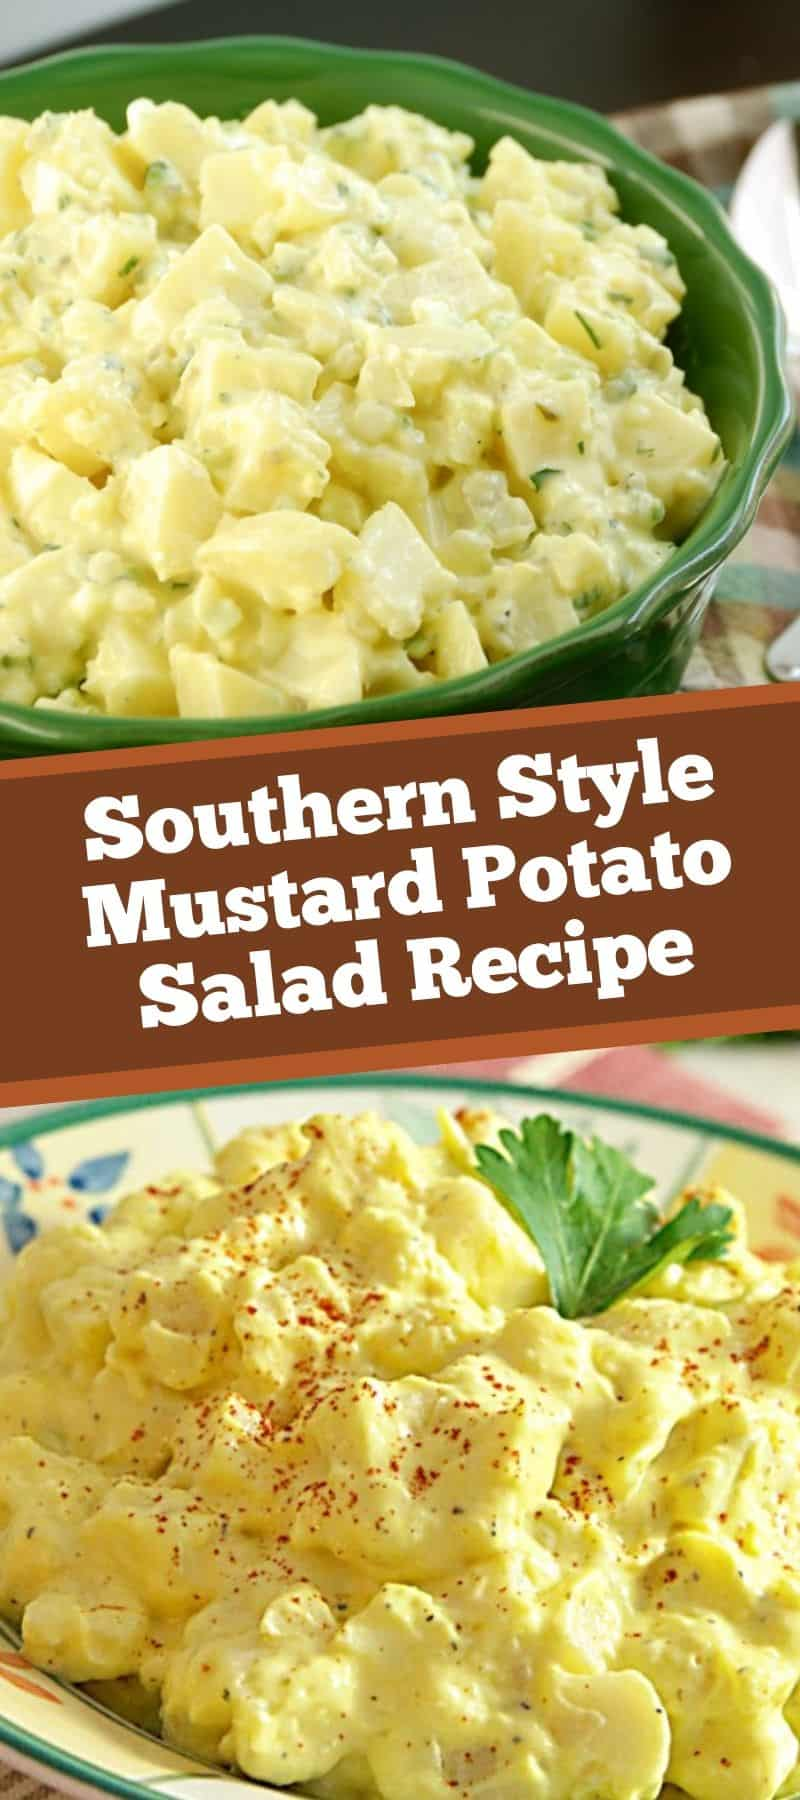 Southern Style Mustard Potato Salad Recipe 3